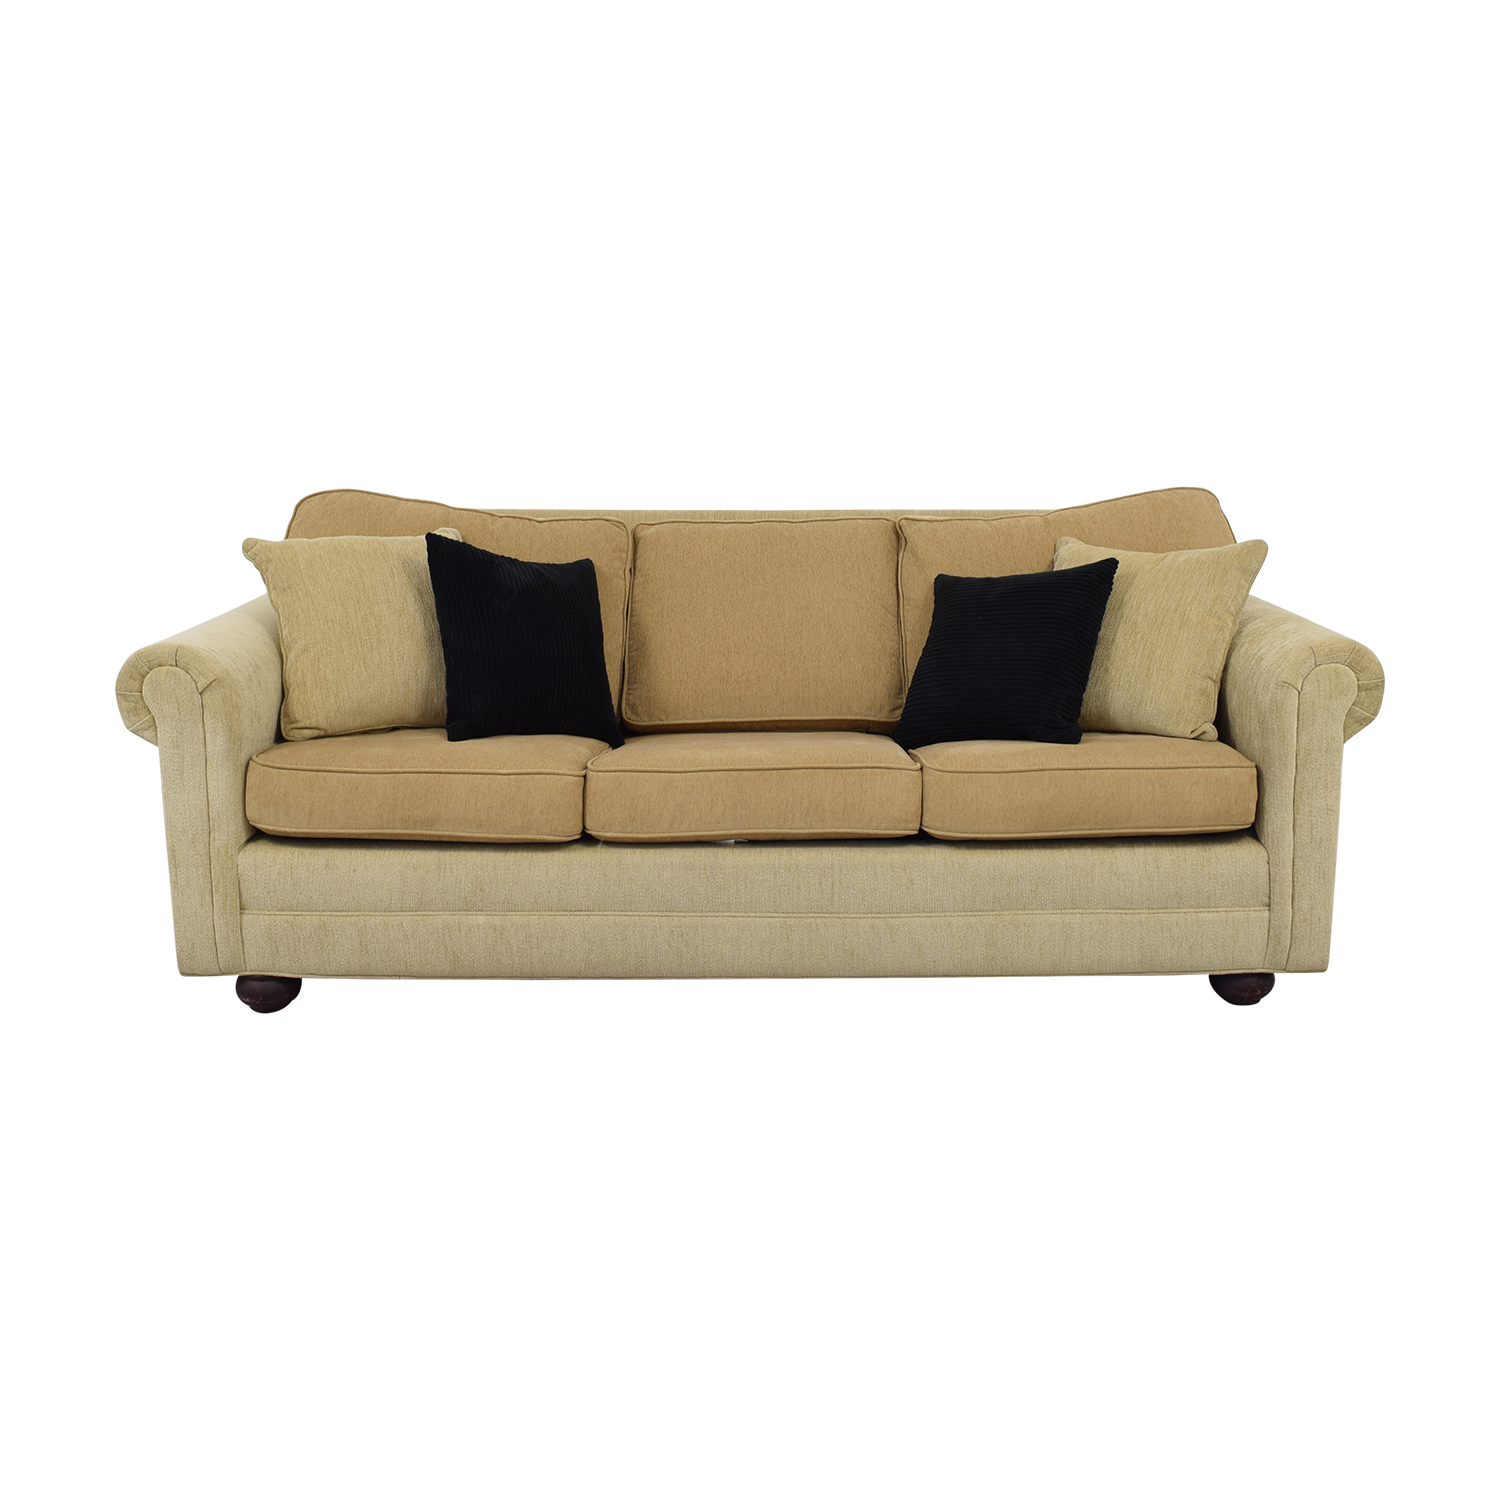 Restoration Hardware Restoration Hardware Beige Three-Cushion Couch with Queen Convertible on sale